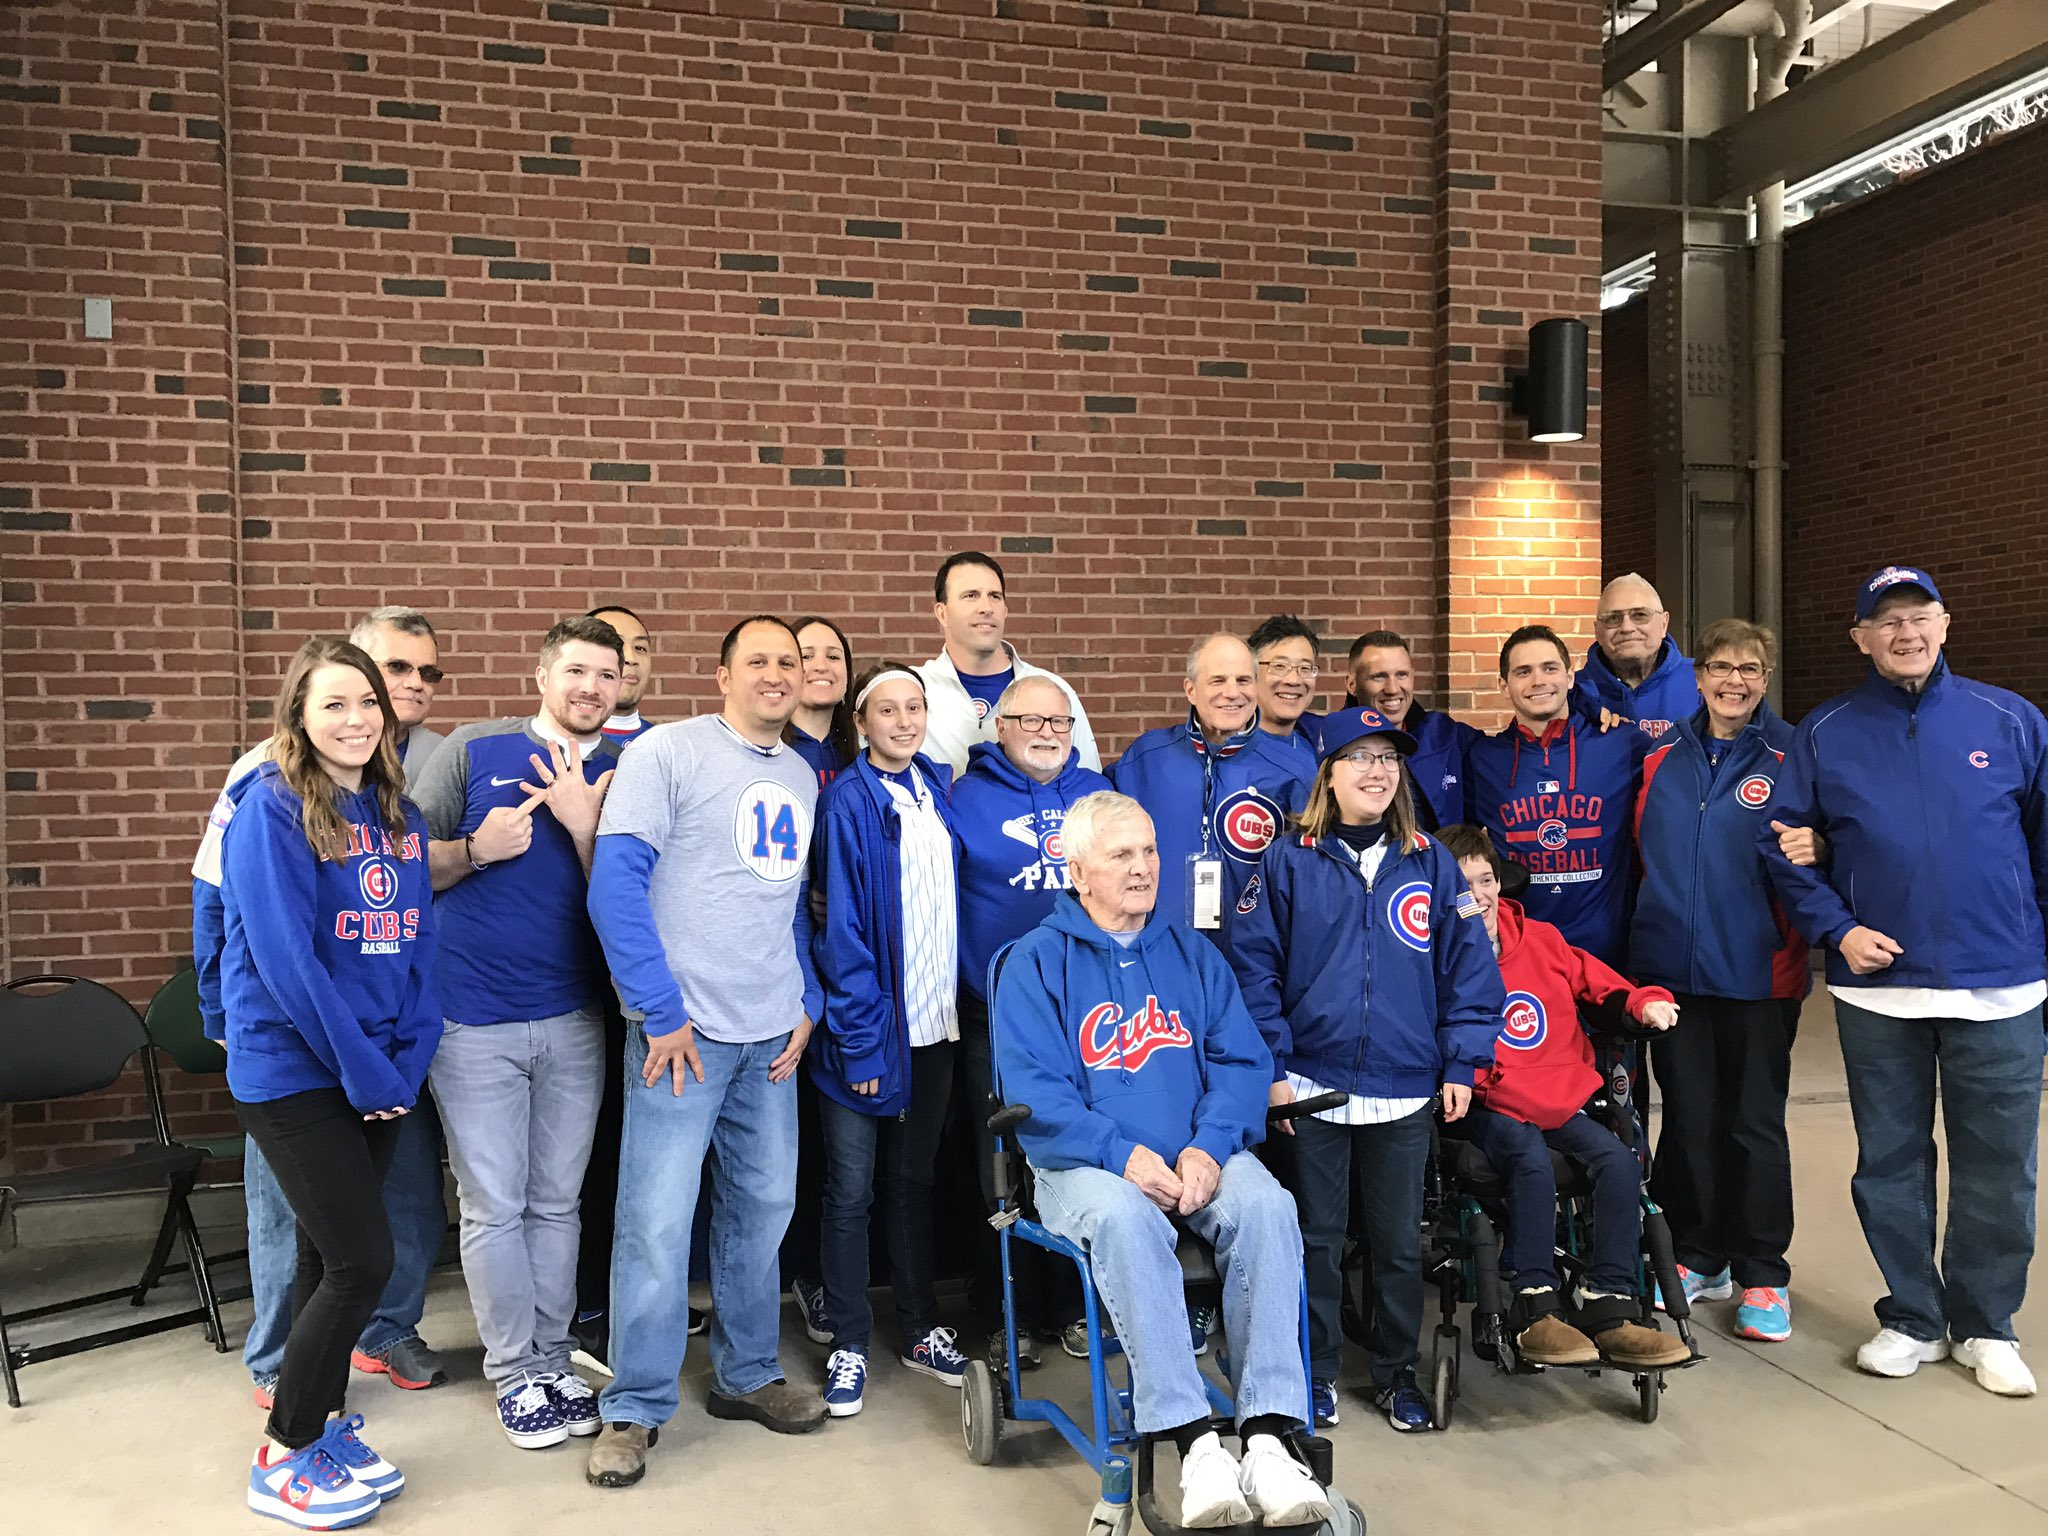 Group shot of the #cubsringbearer ! #ThatsCub #Cubs @Cubs https://t.co/g71pqCwL07